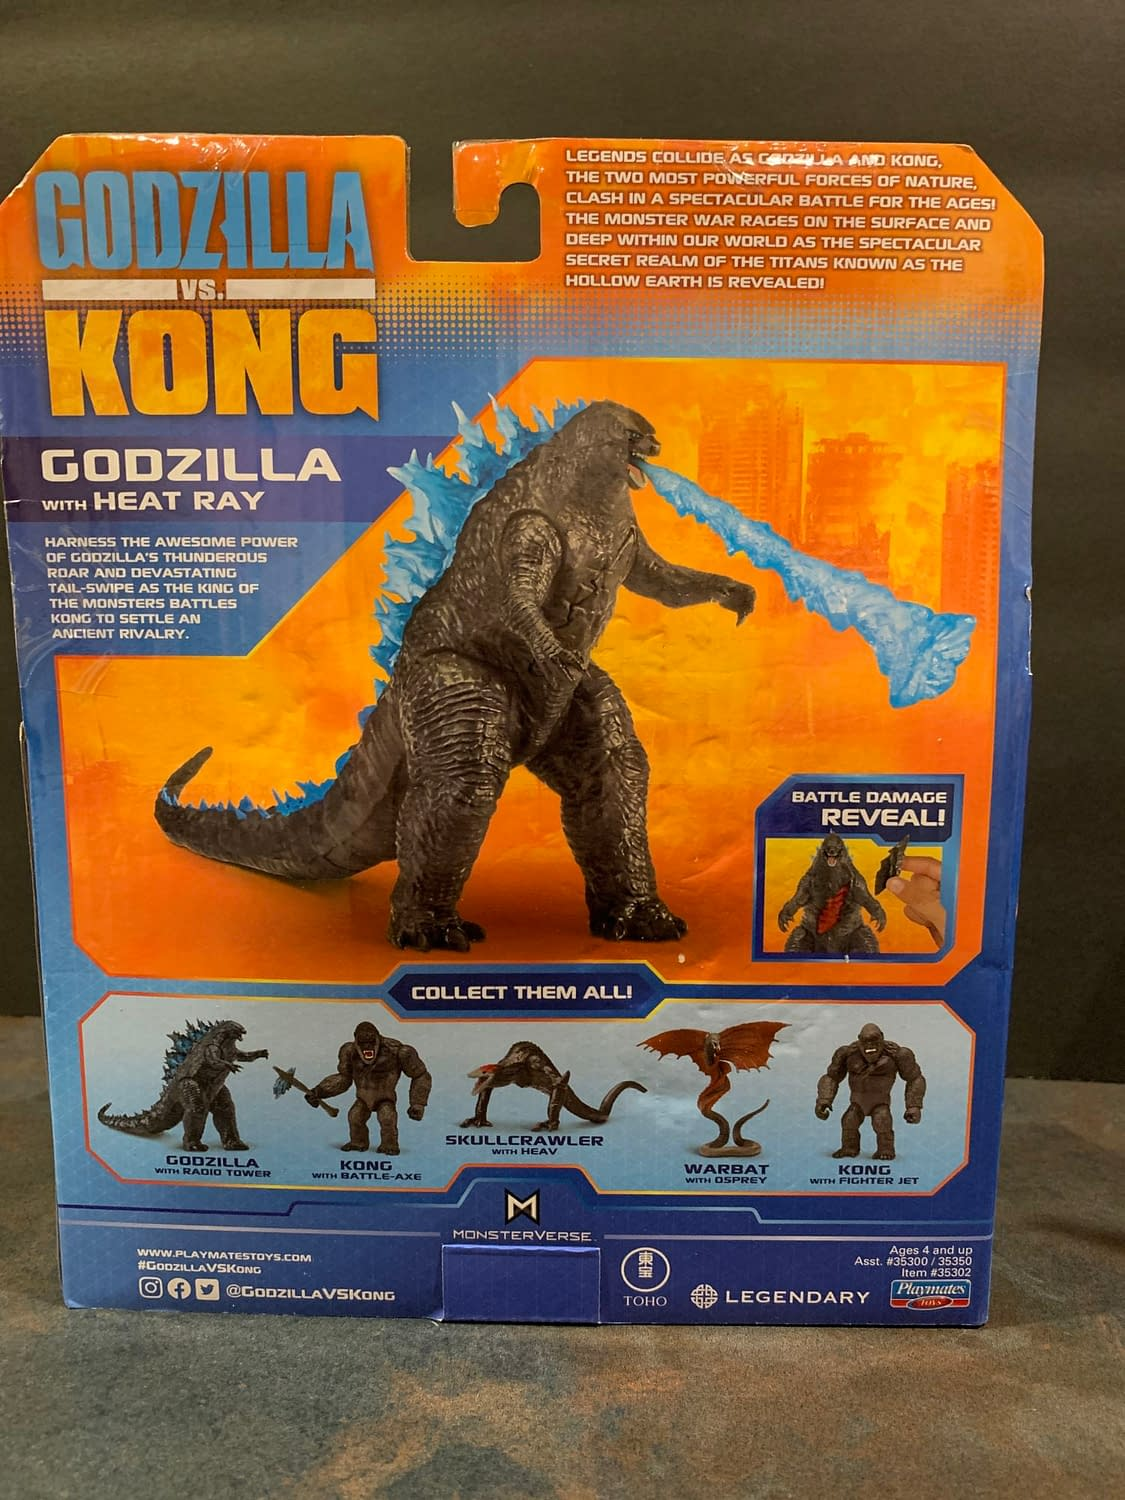 Godzilla Vs Kong: Let's Look At The Playmates Battle Damaged Figures